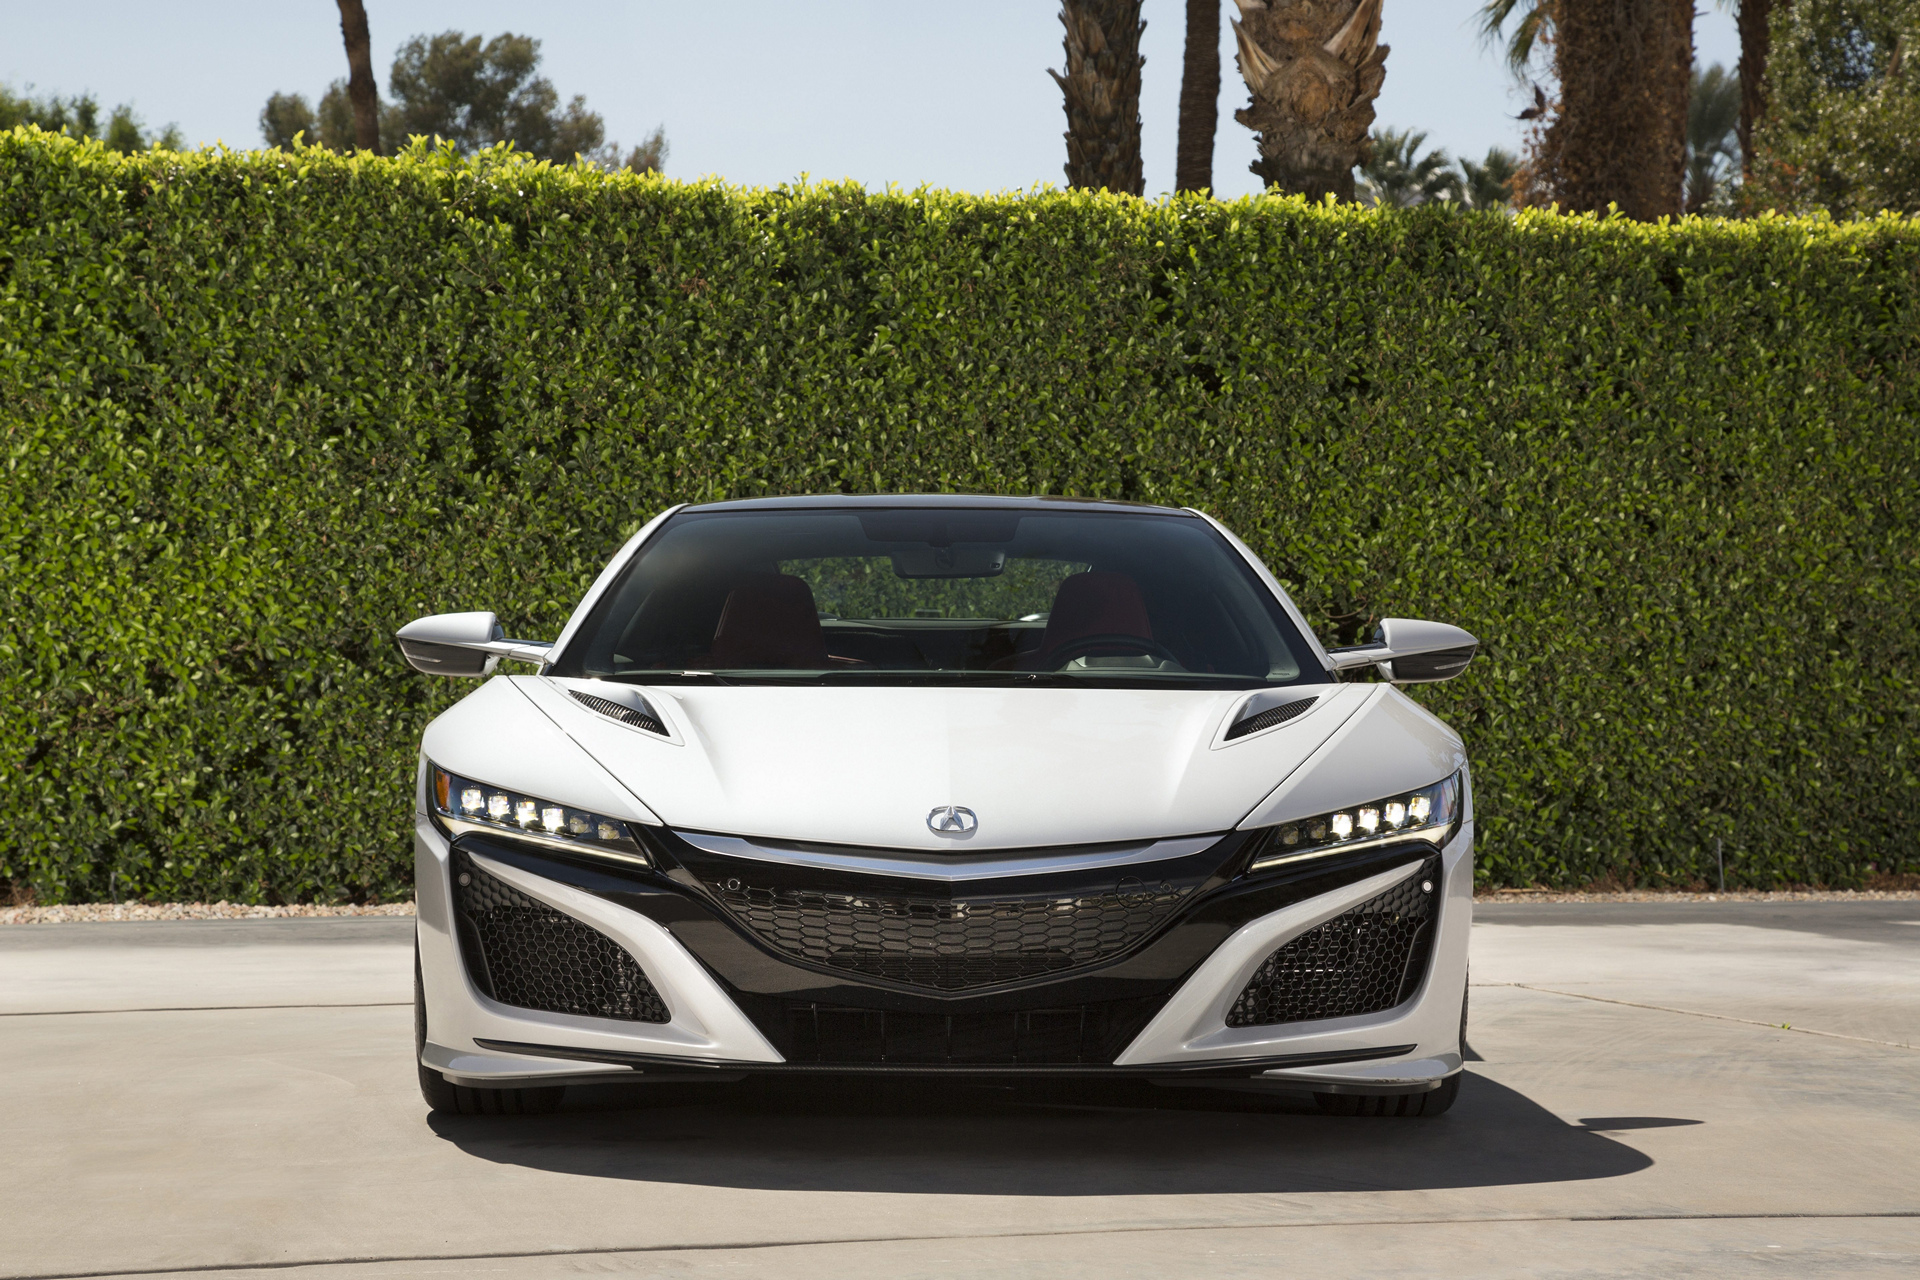 2017 Acura NSX Review - Carrrs Auto Portal